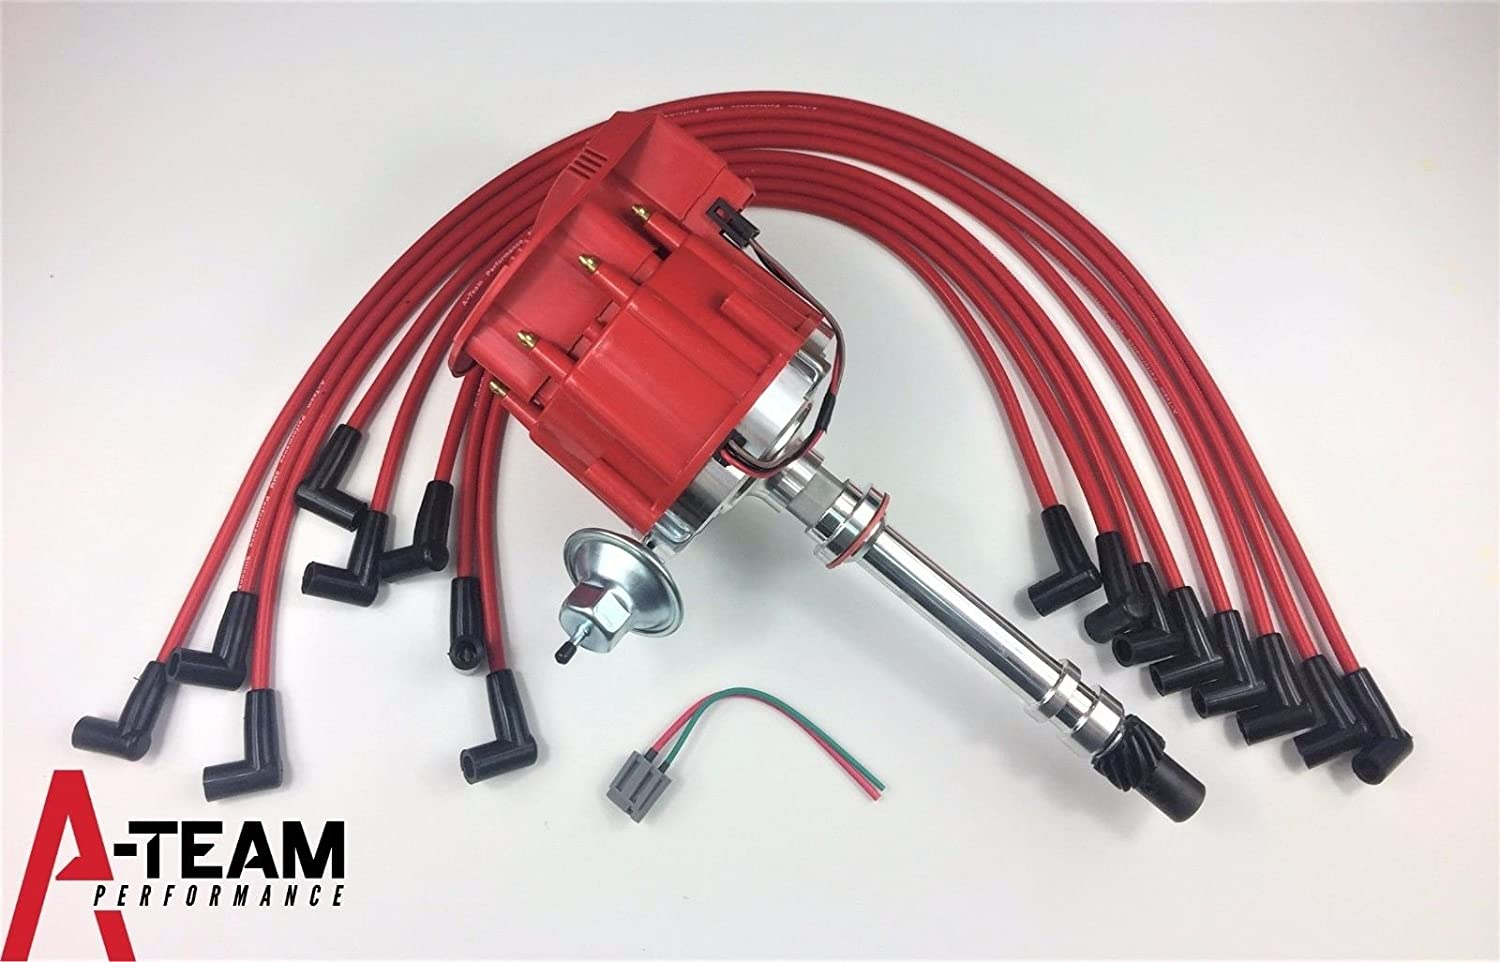 A Team Performance Super Hei Distributor Red 8mm Spark Small Block Chevy Wiring Plug Wires Over Valve Cover Compatible With Sbc 350 Automotive